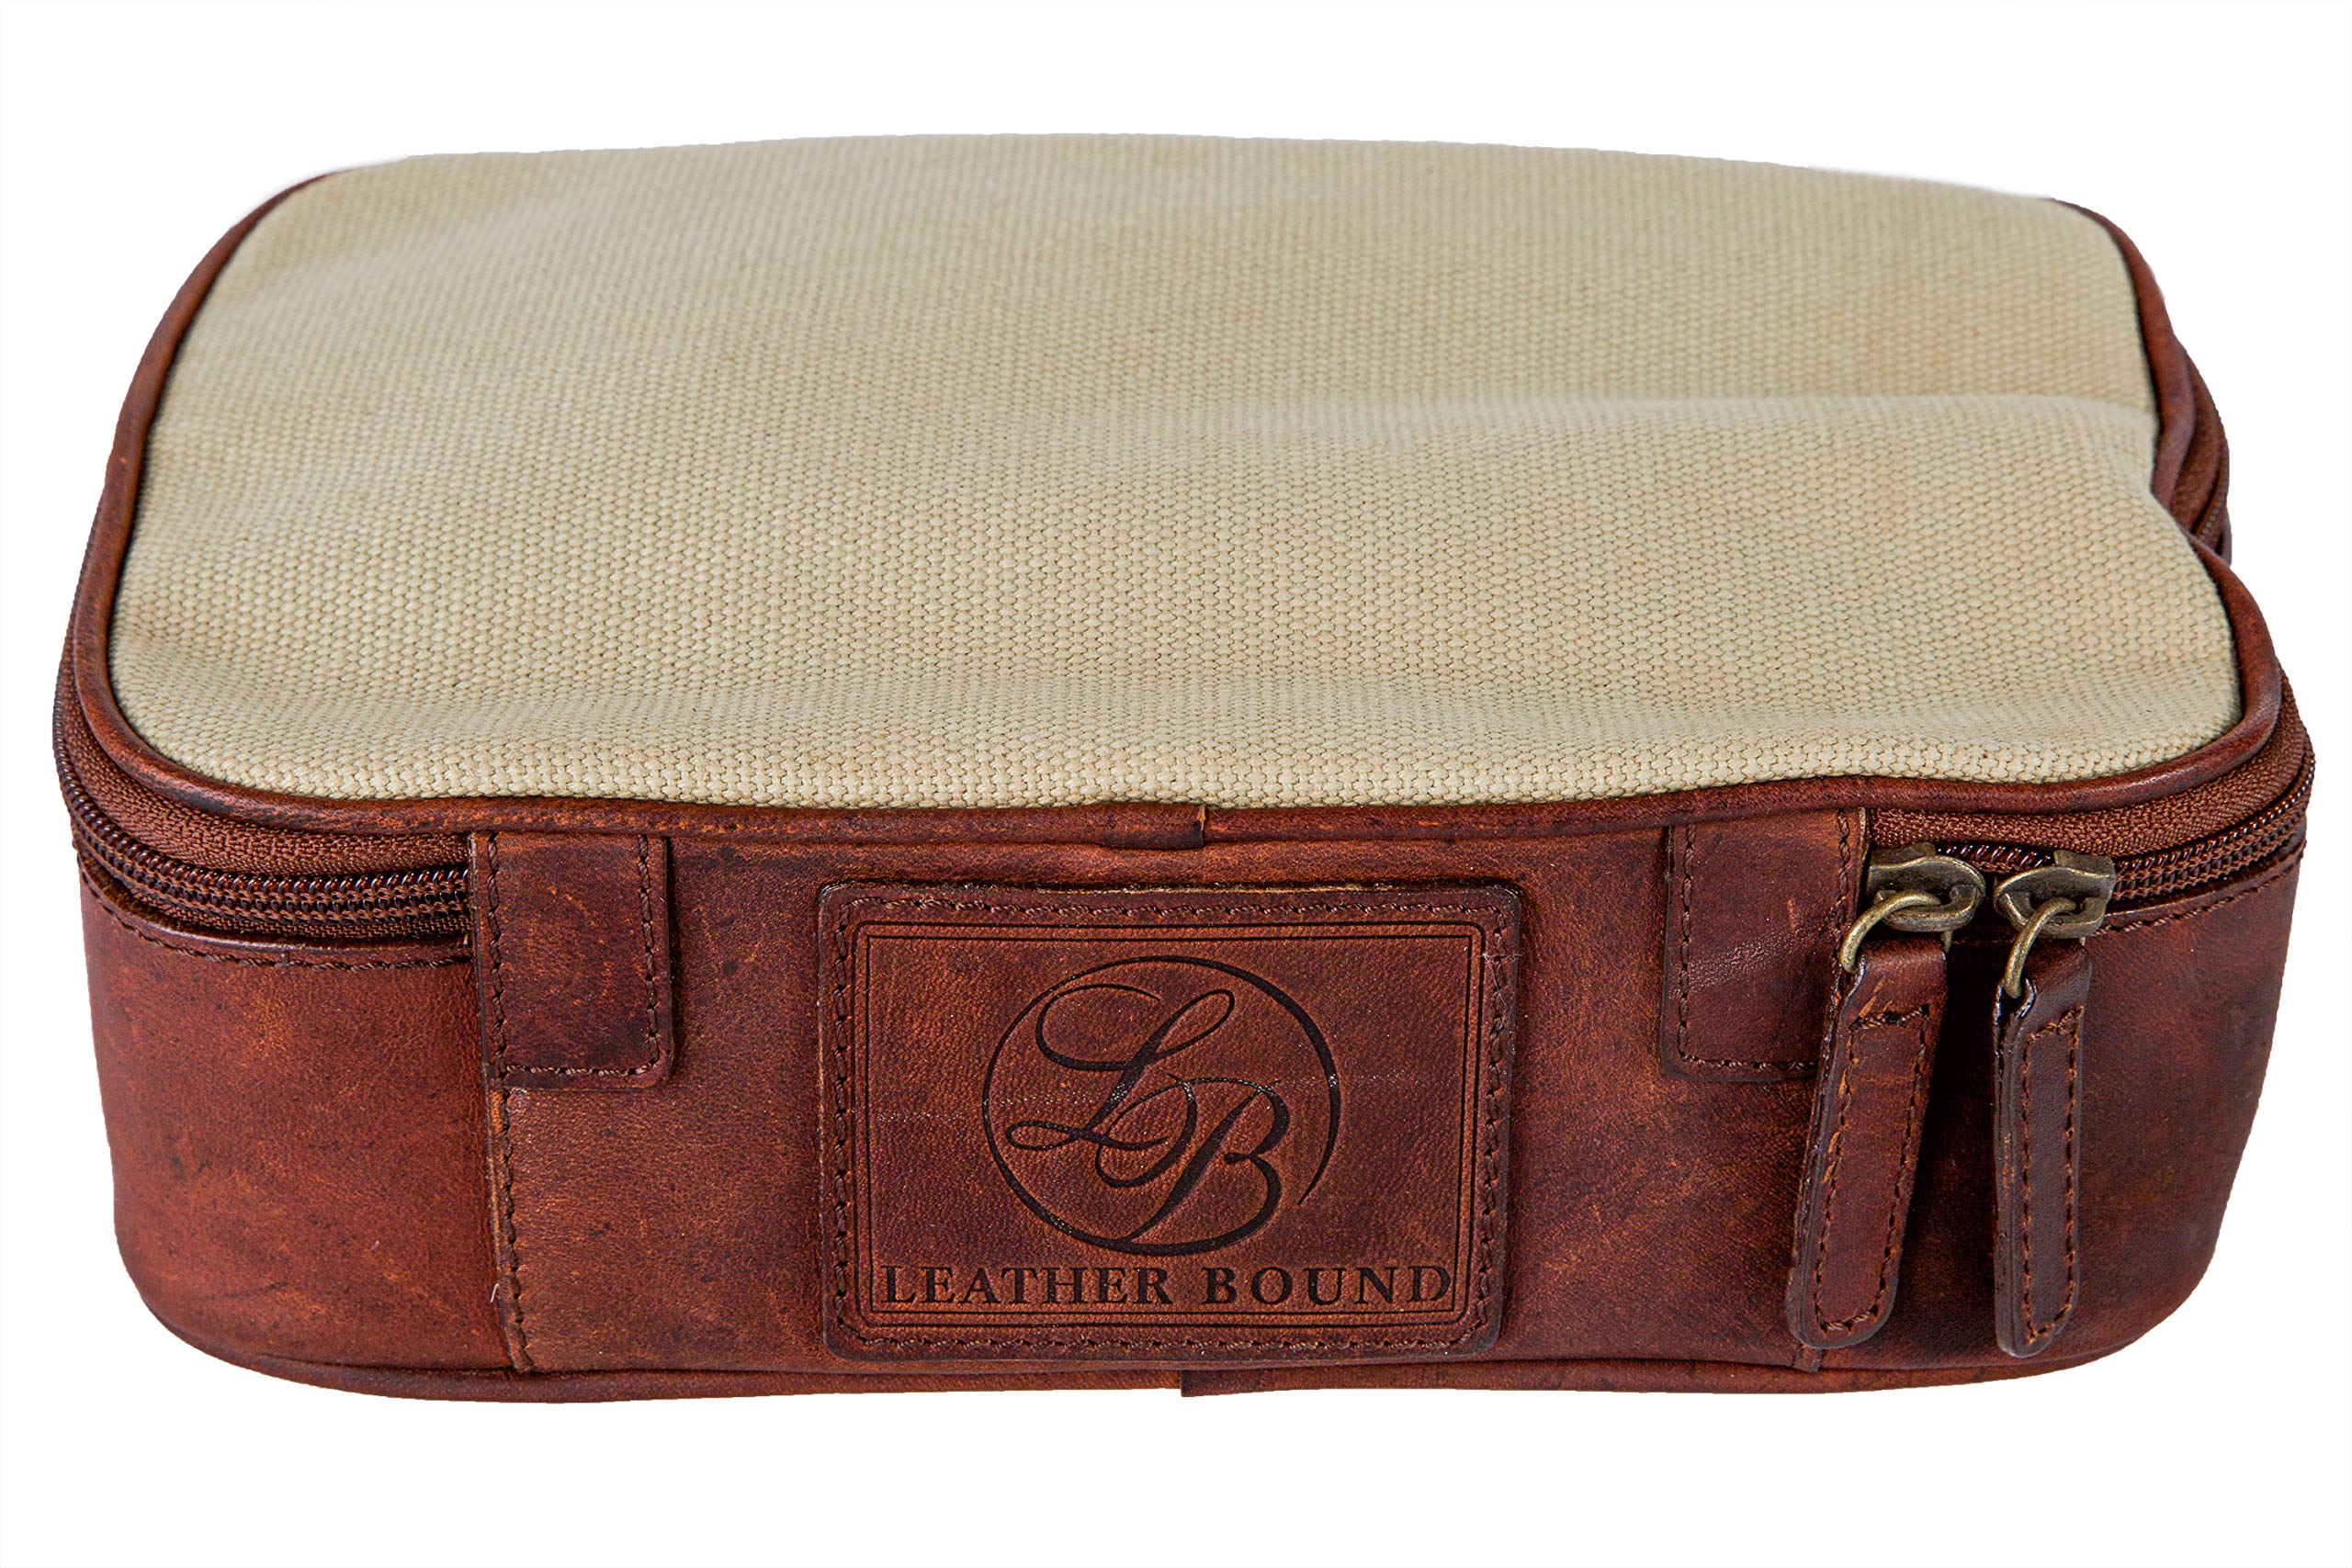 Multifunctional Travel Size Men and Woman's PU leather Zip-up Compartment Traveling Toiletry Bag.